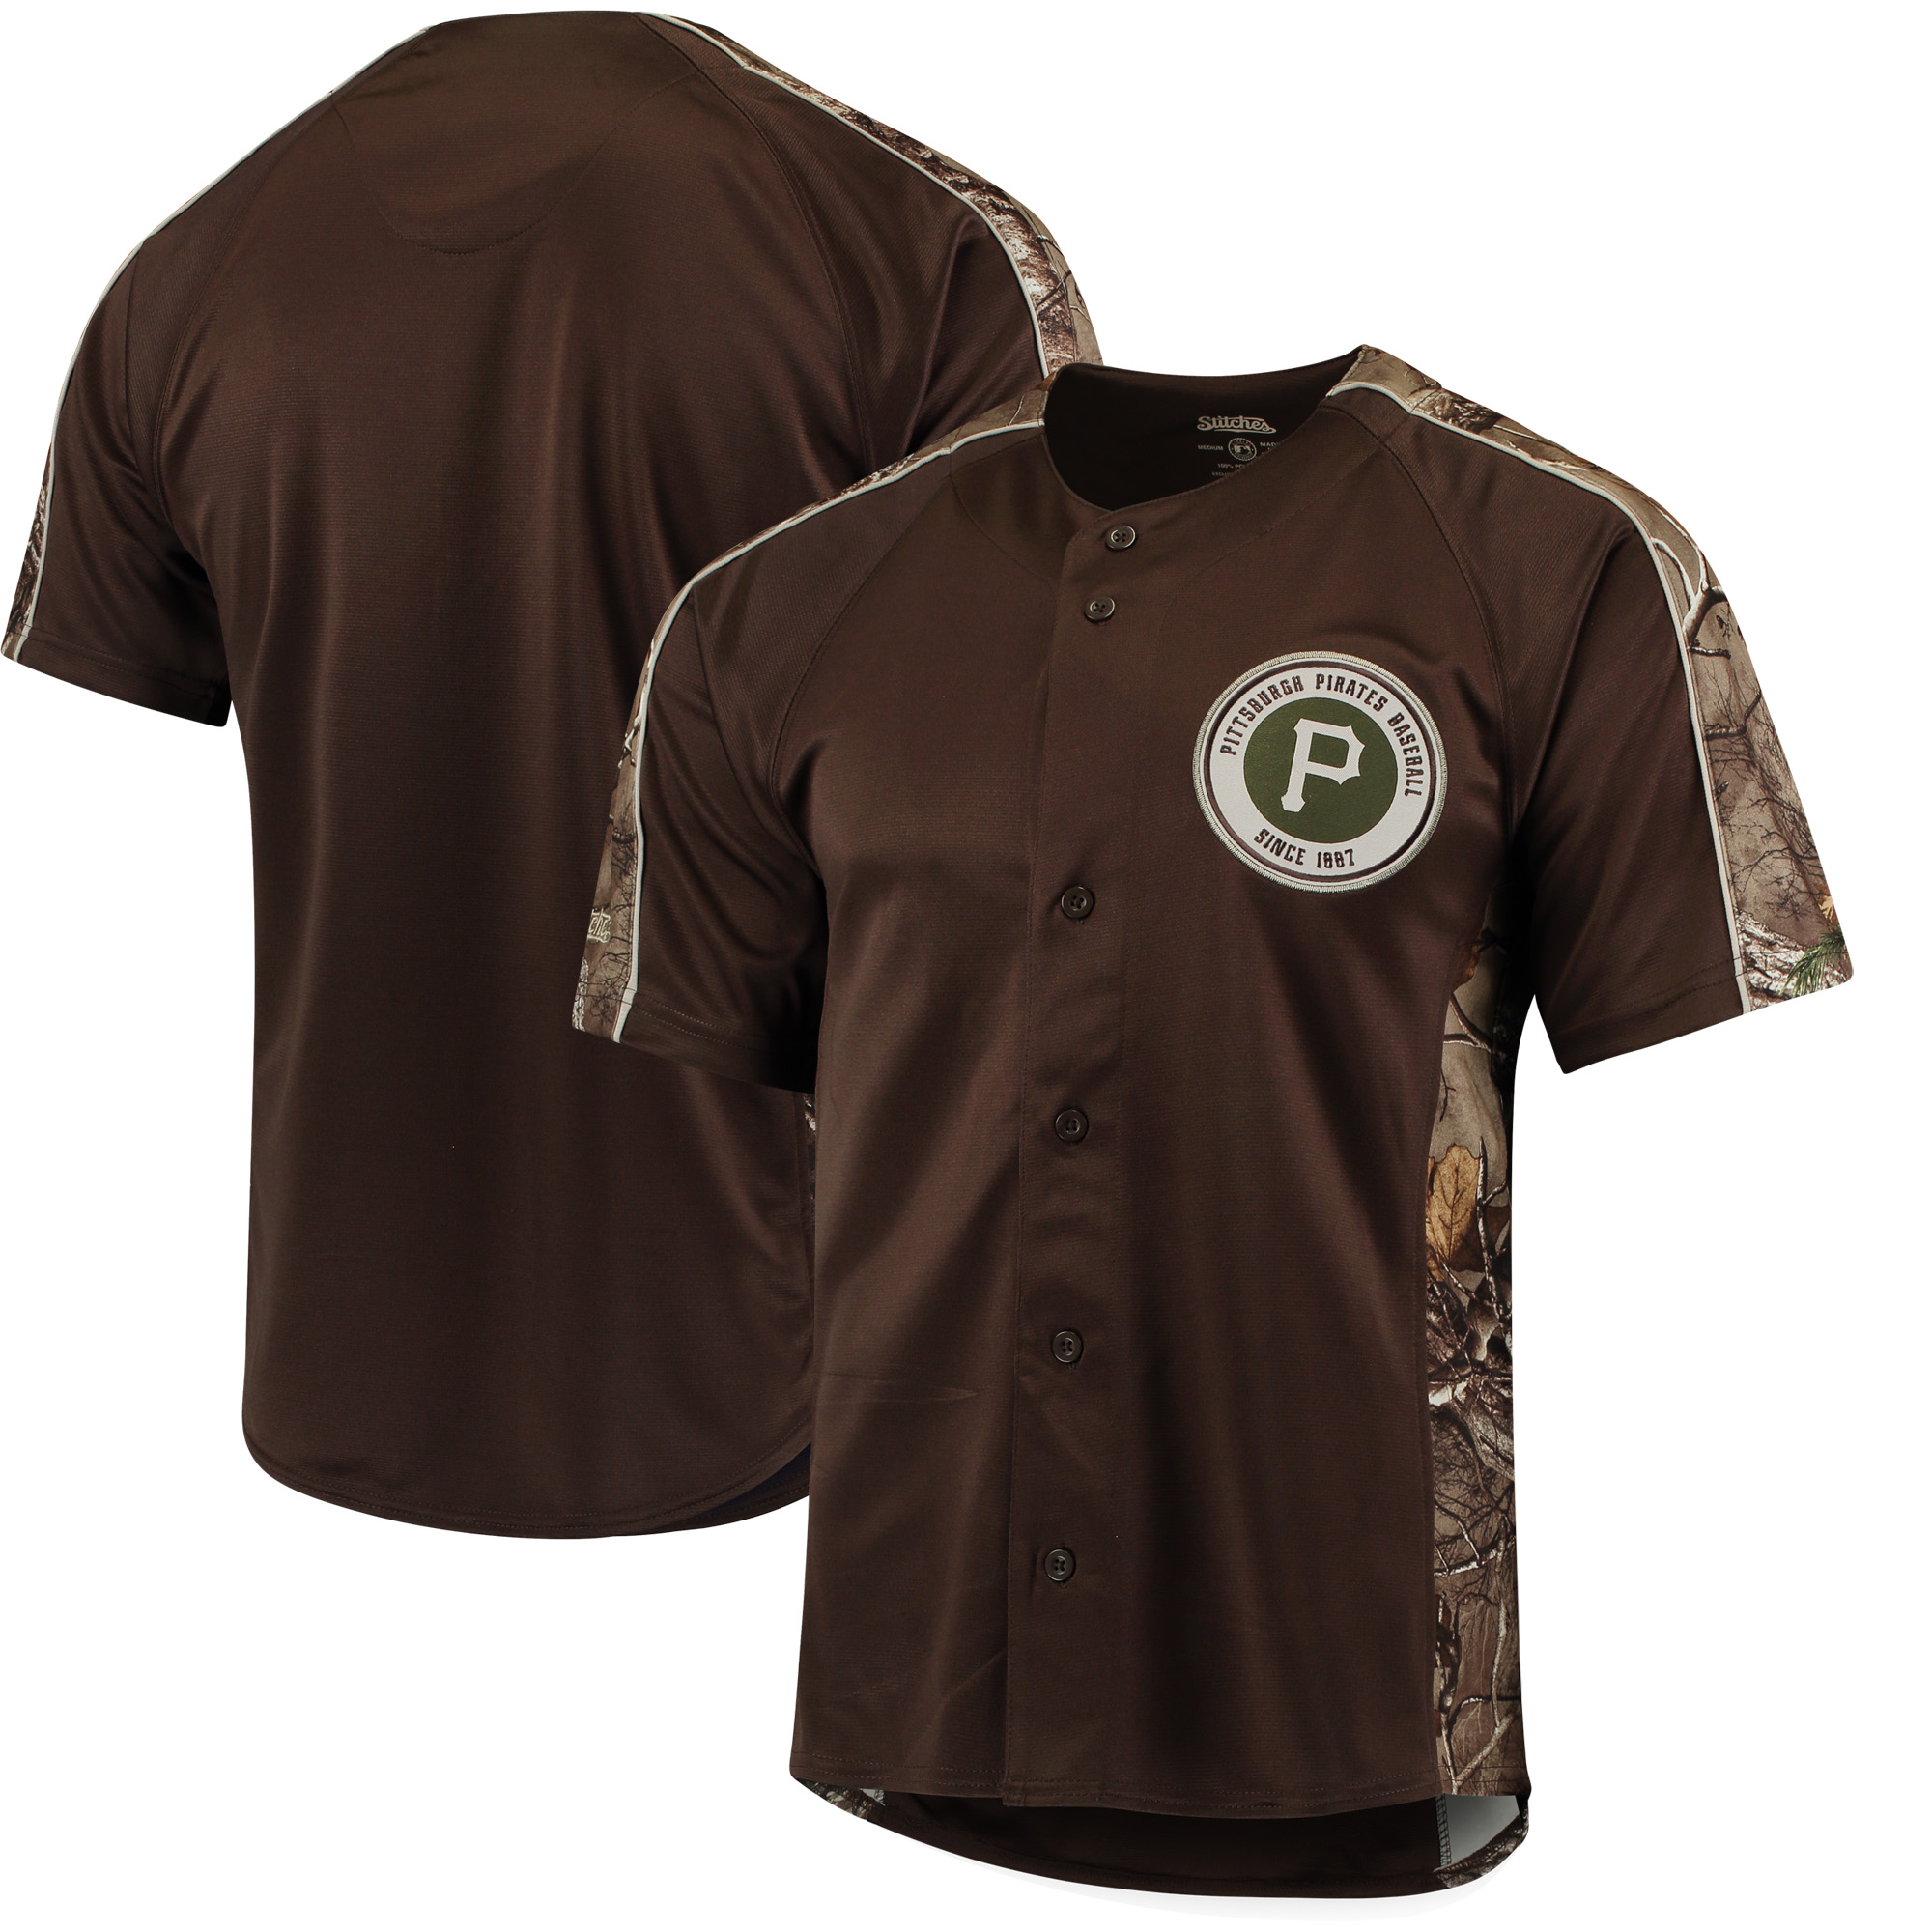 Pittsburgh Pirates Stitches Replica Jersey - Realtree Camo